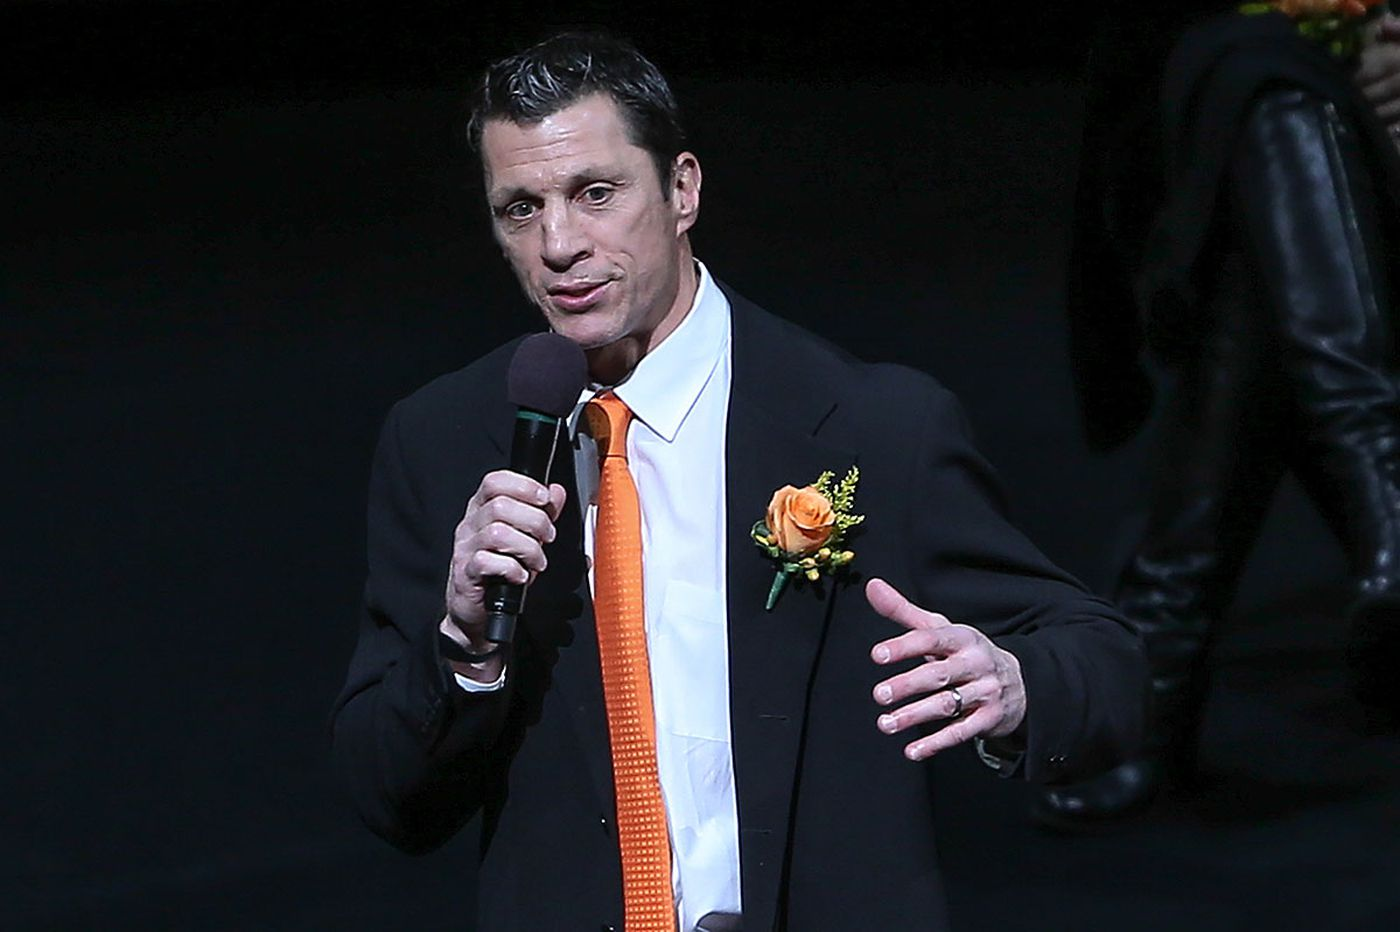 Brind'Amour: 'Flyers fans never forget'